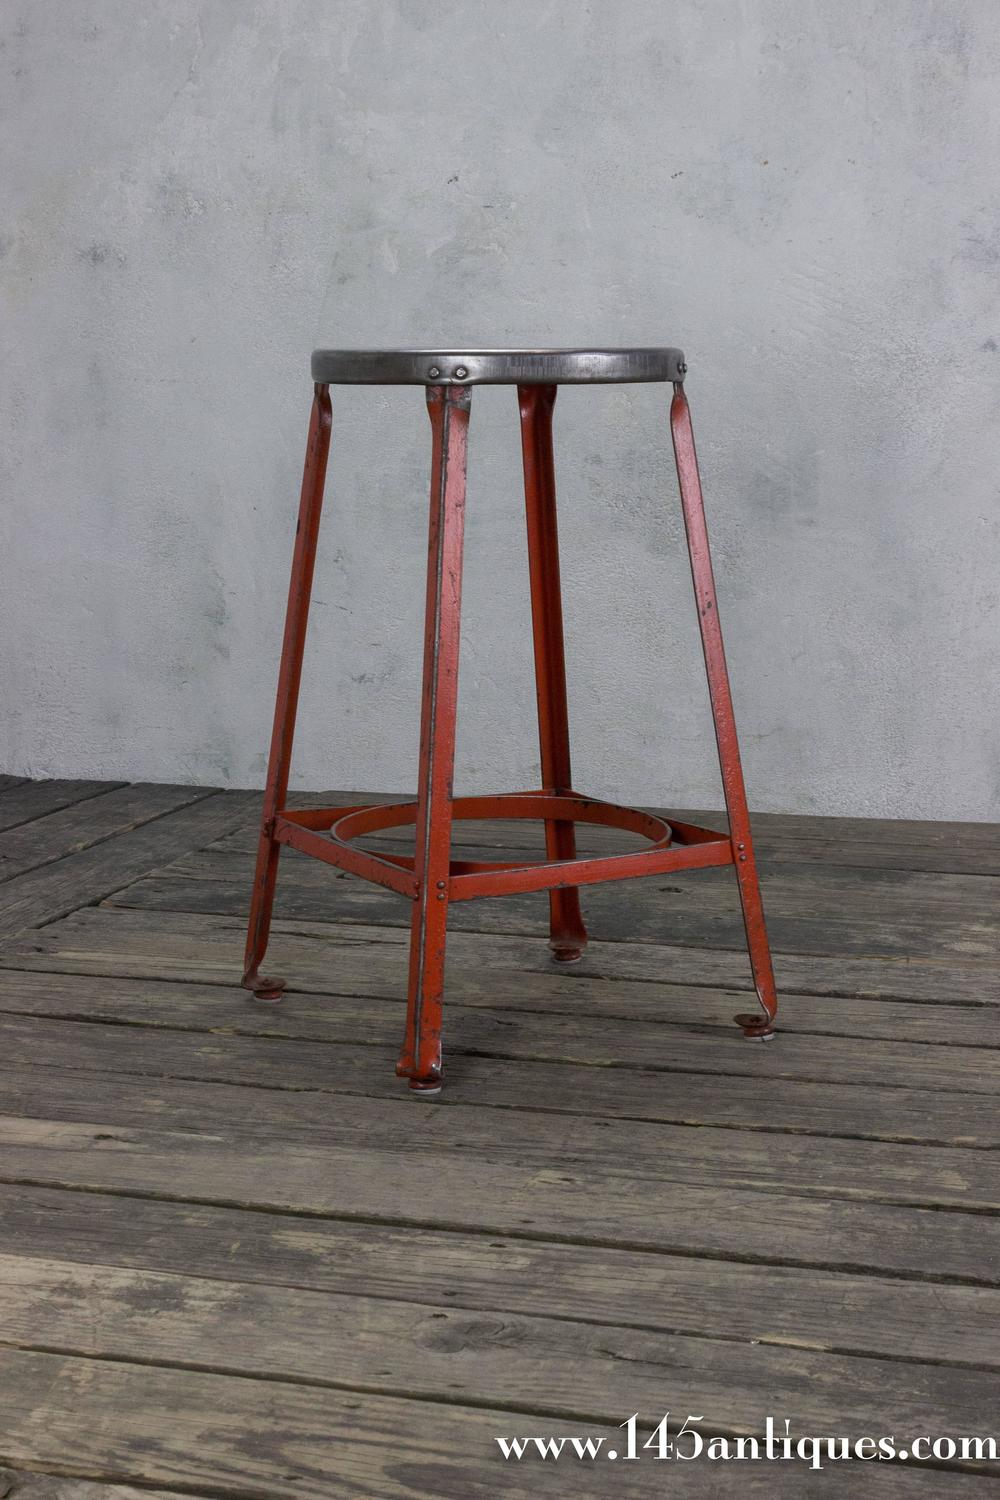 Industrial Stool with Red Legs For Sale at 1stdibs : ST1211042z from www.1stdibs.com size 1000 x 1500 jpeg 172kB